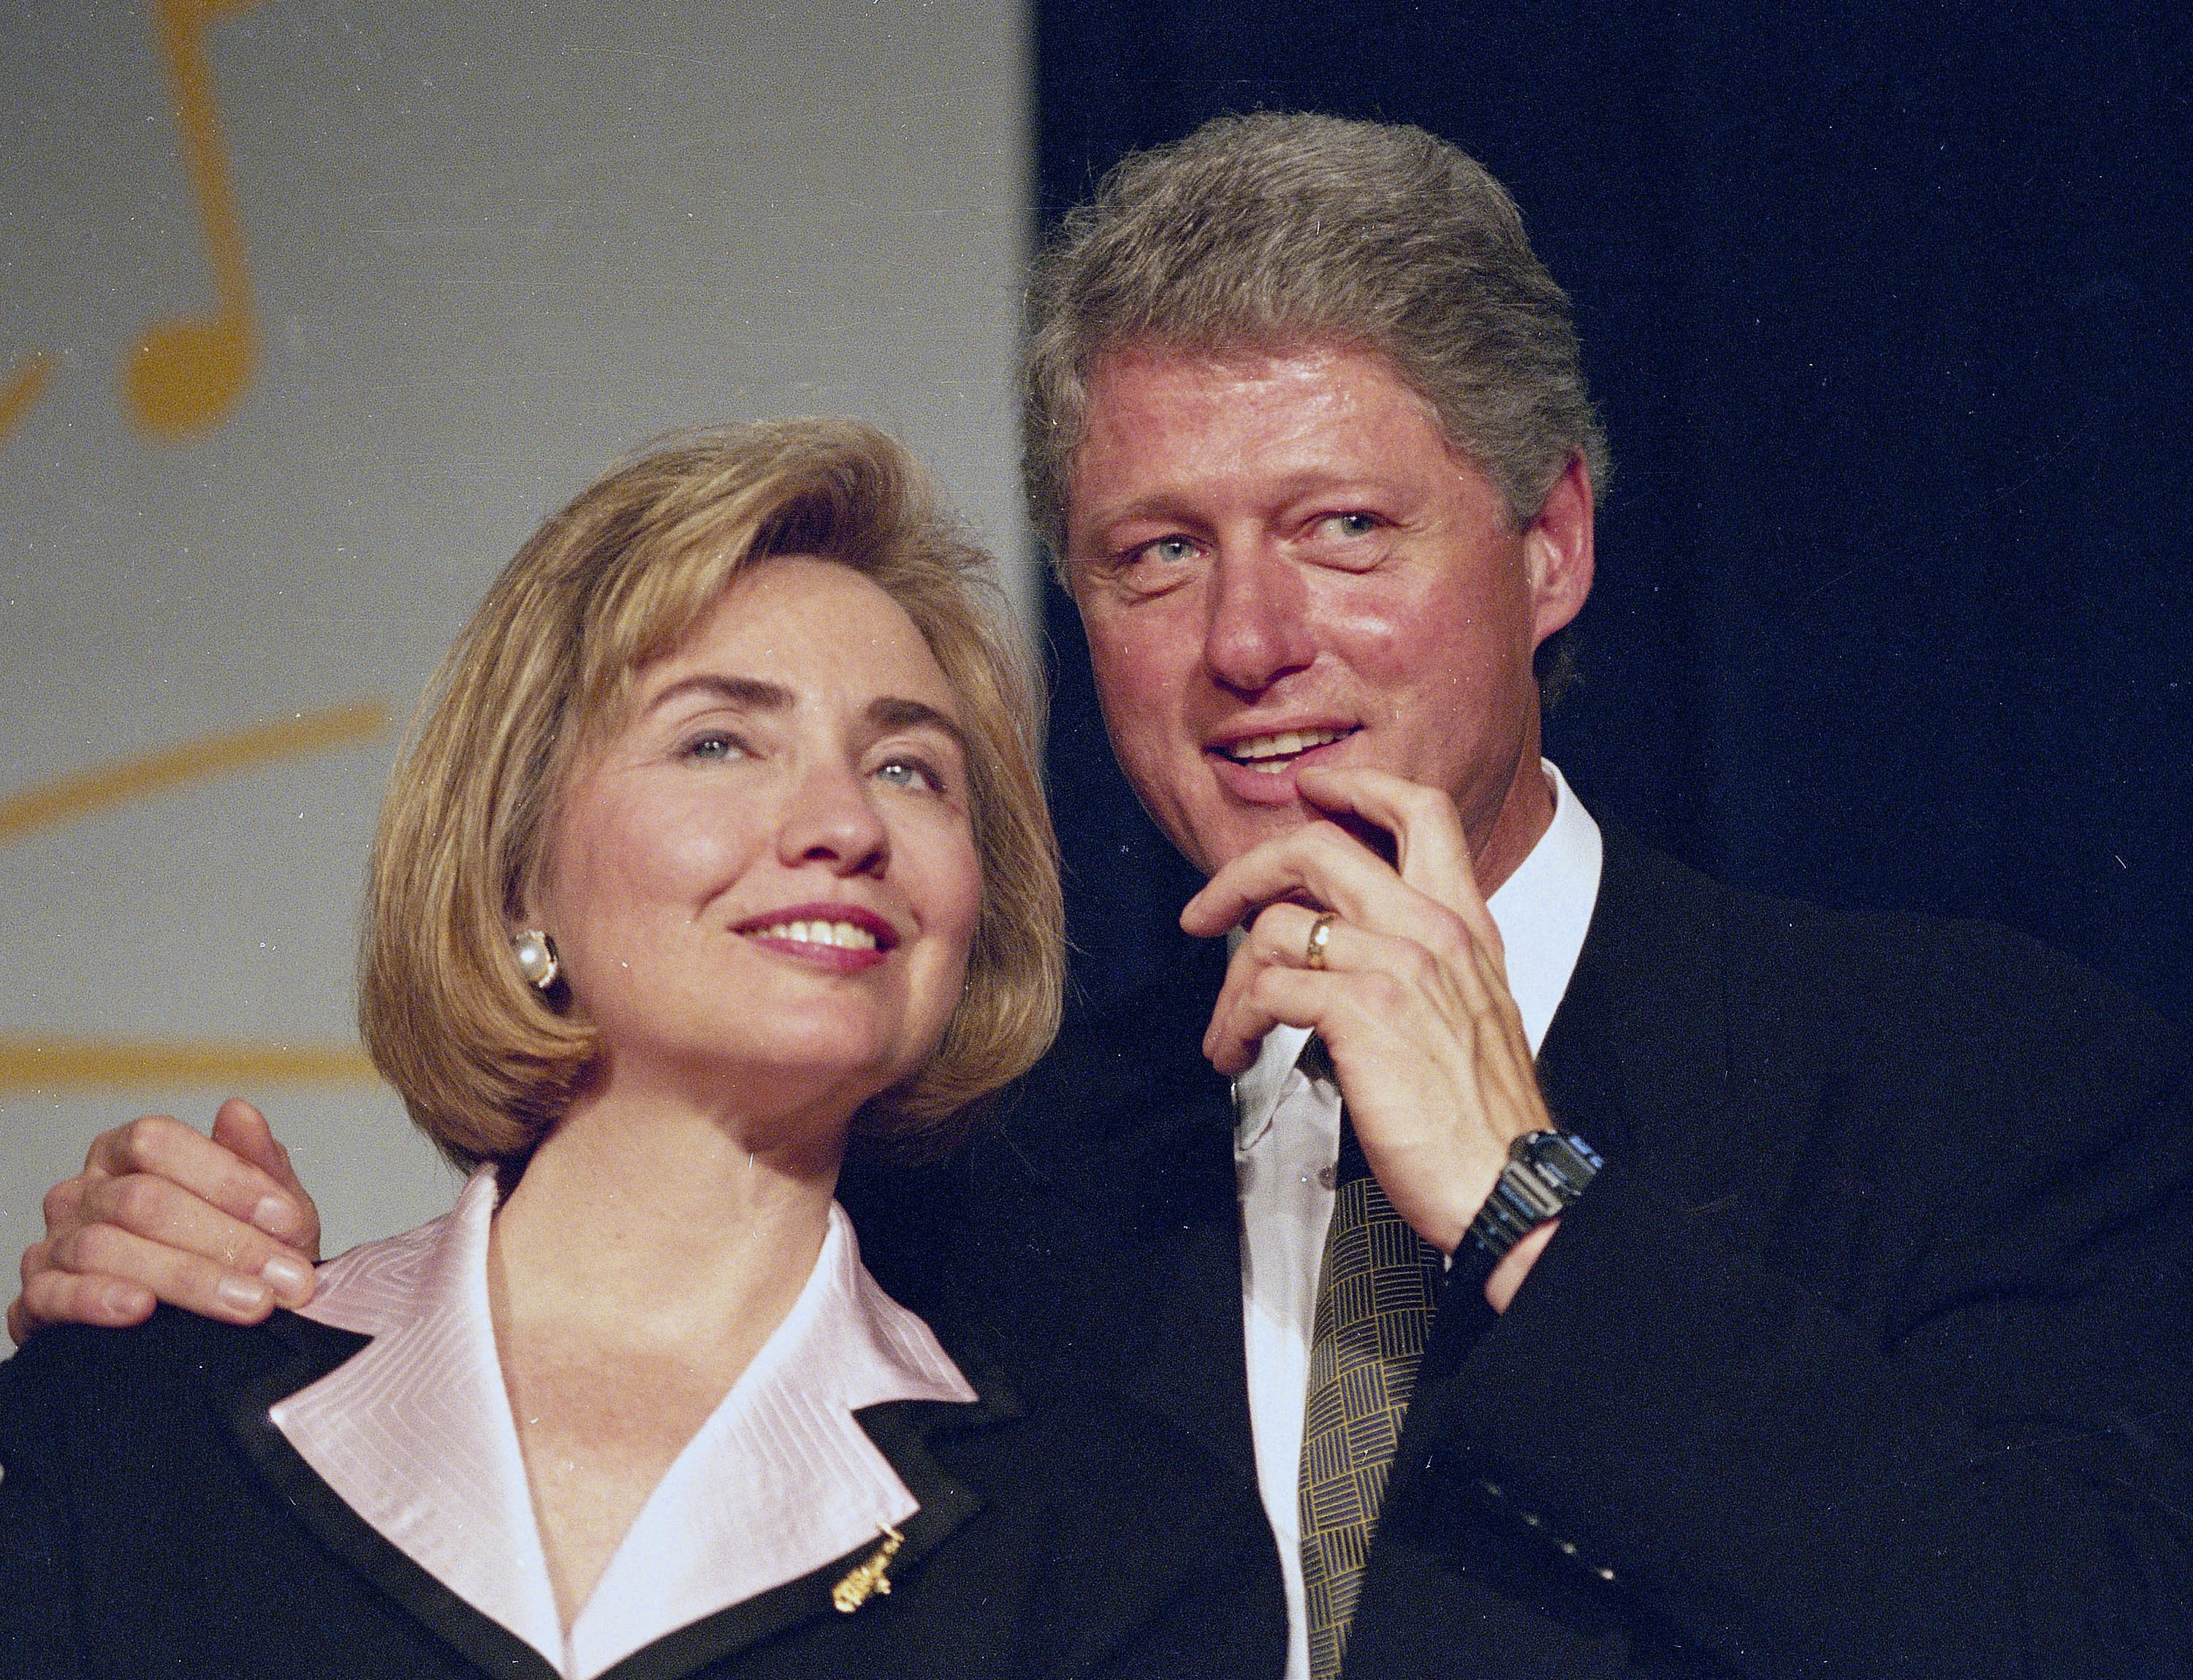 FILE - In this June 22, 1994 file photo, President Bill Clinton and first lady Hillary Clinton wait to address a group of young Democratic supporters known as the Saxophone Club in Washington.